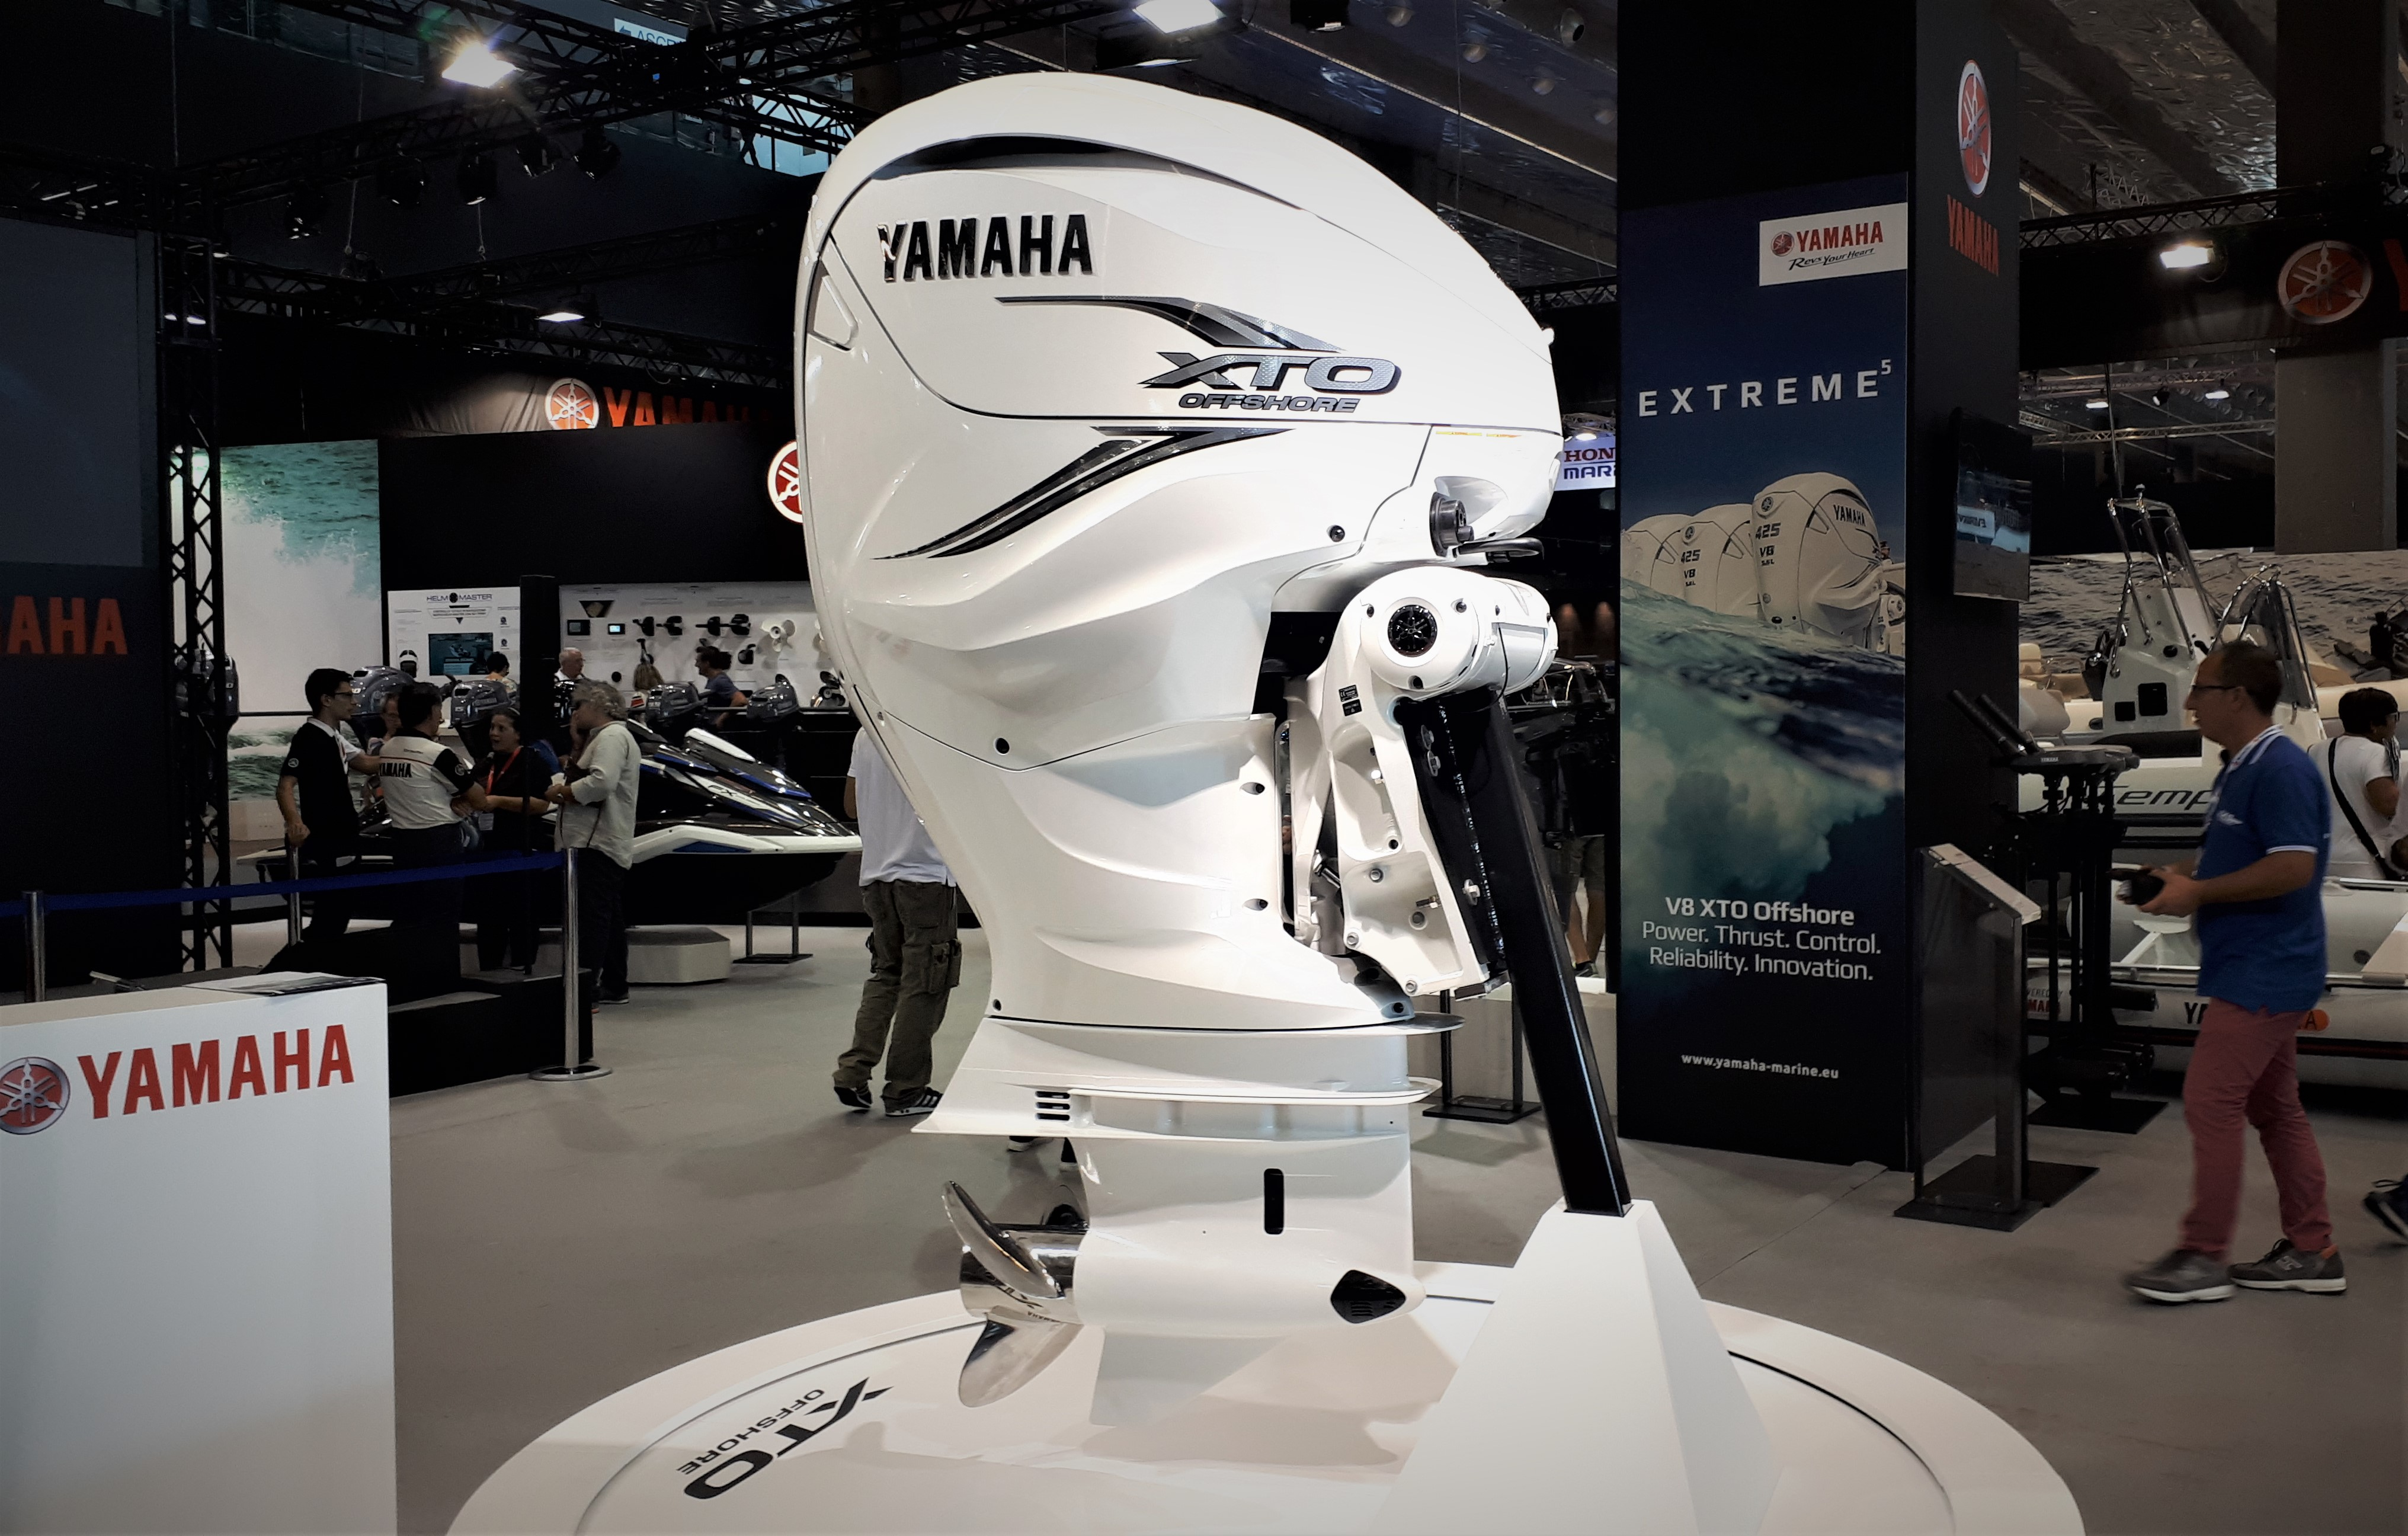 The biggest ever, here is the new Yamaha V8 XTO Offshore